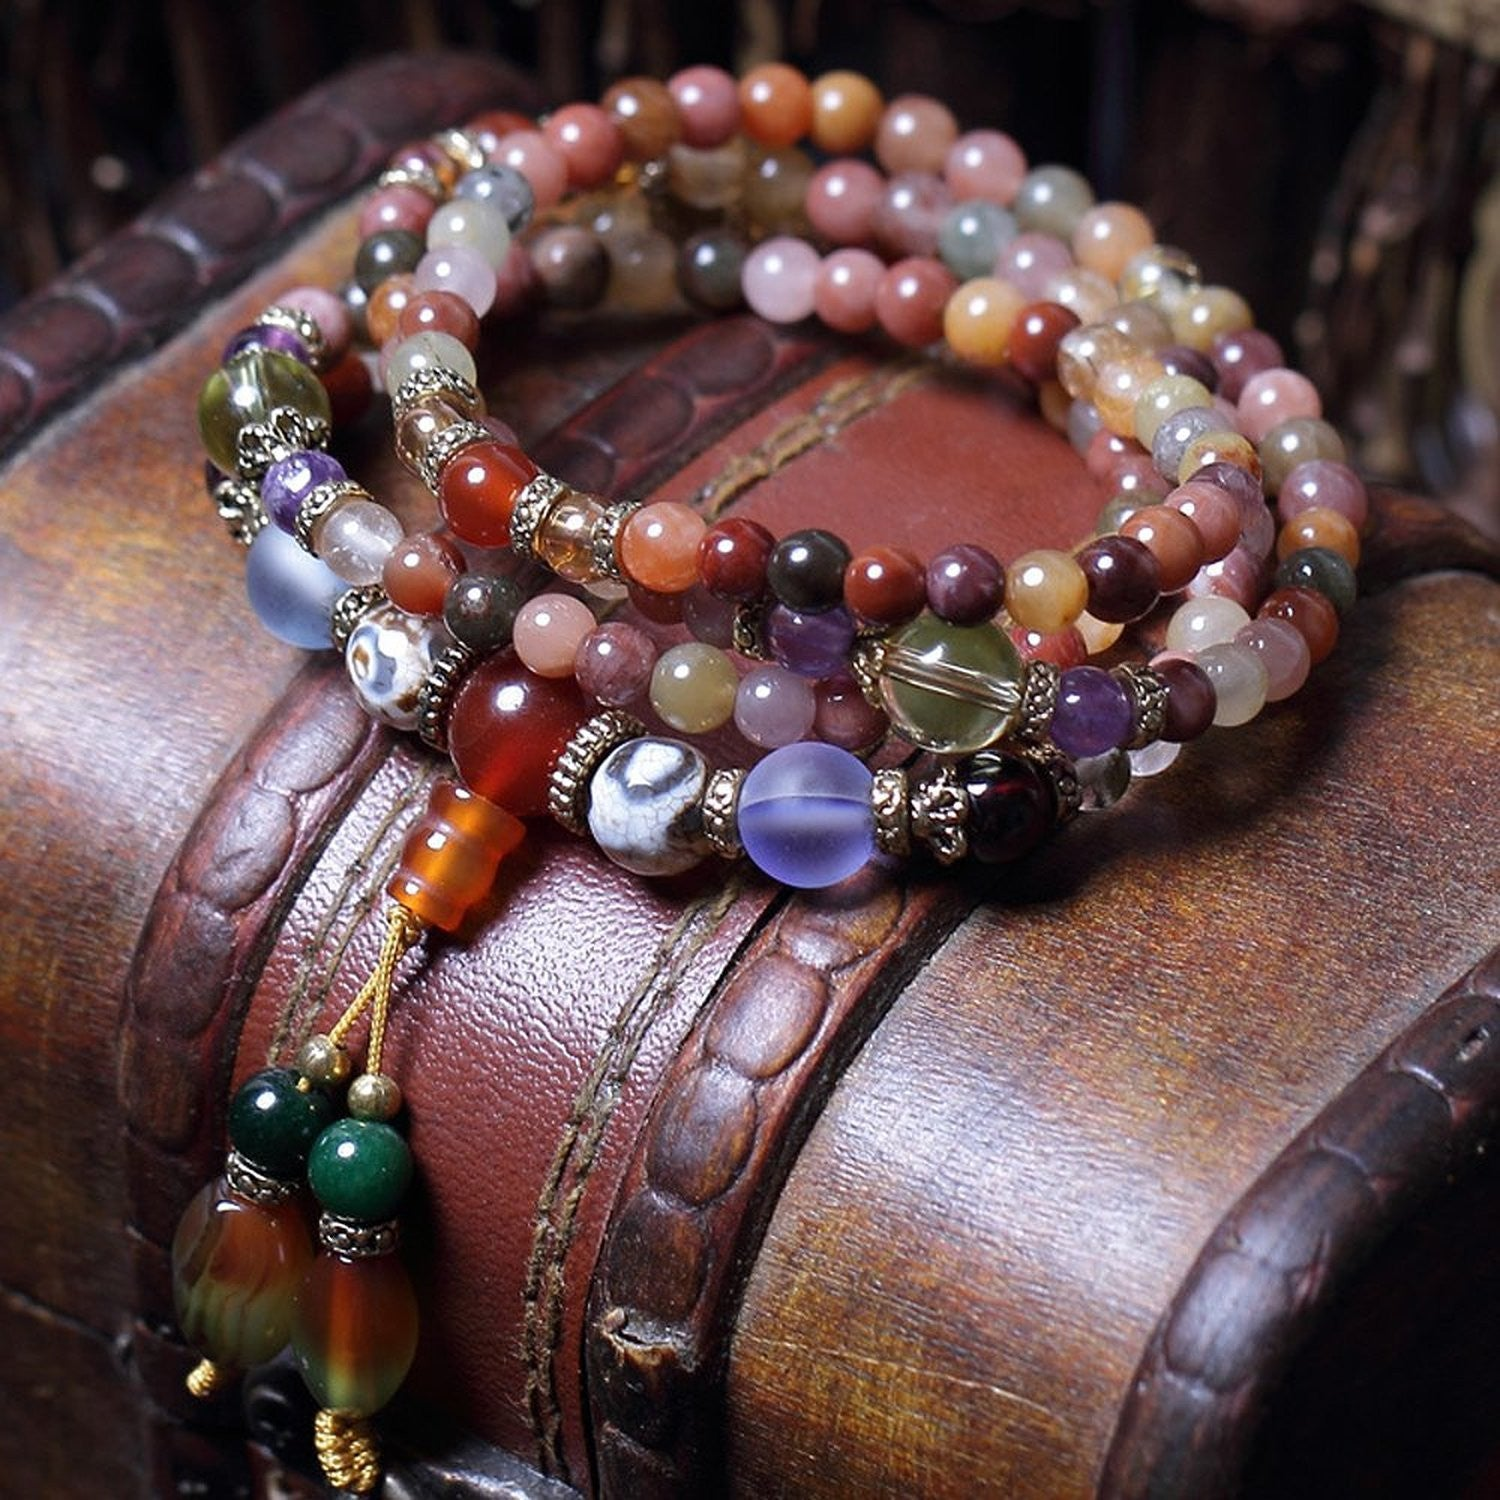 Buddhist Crystal Quartz Mala Bracelet | 50% OFF | ENDS TODAY